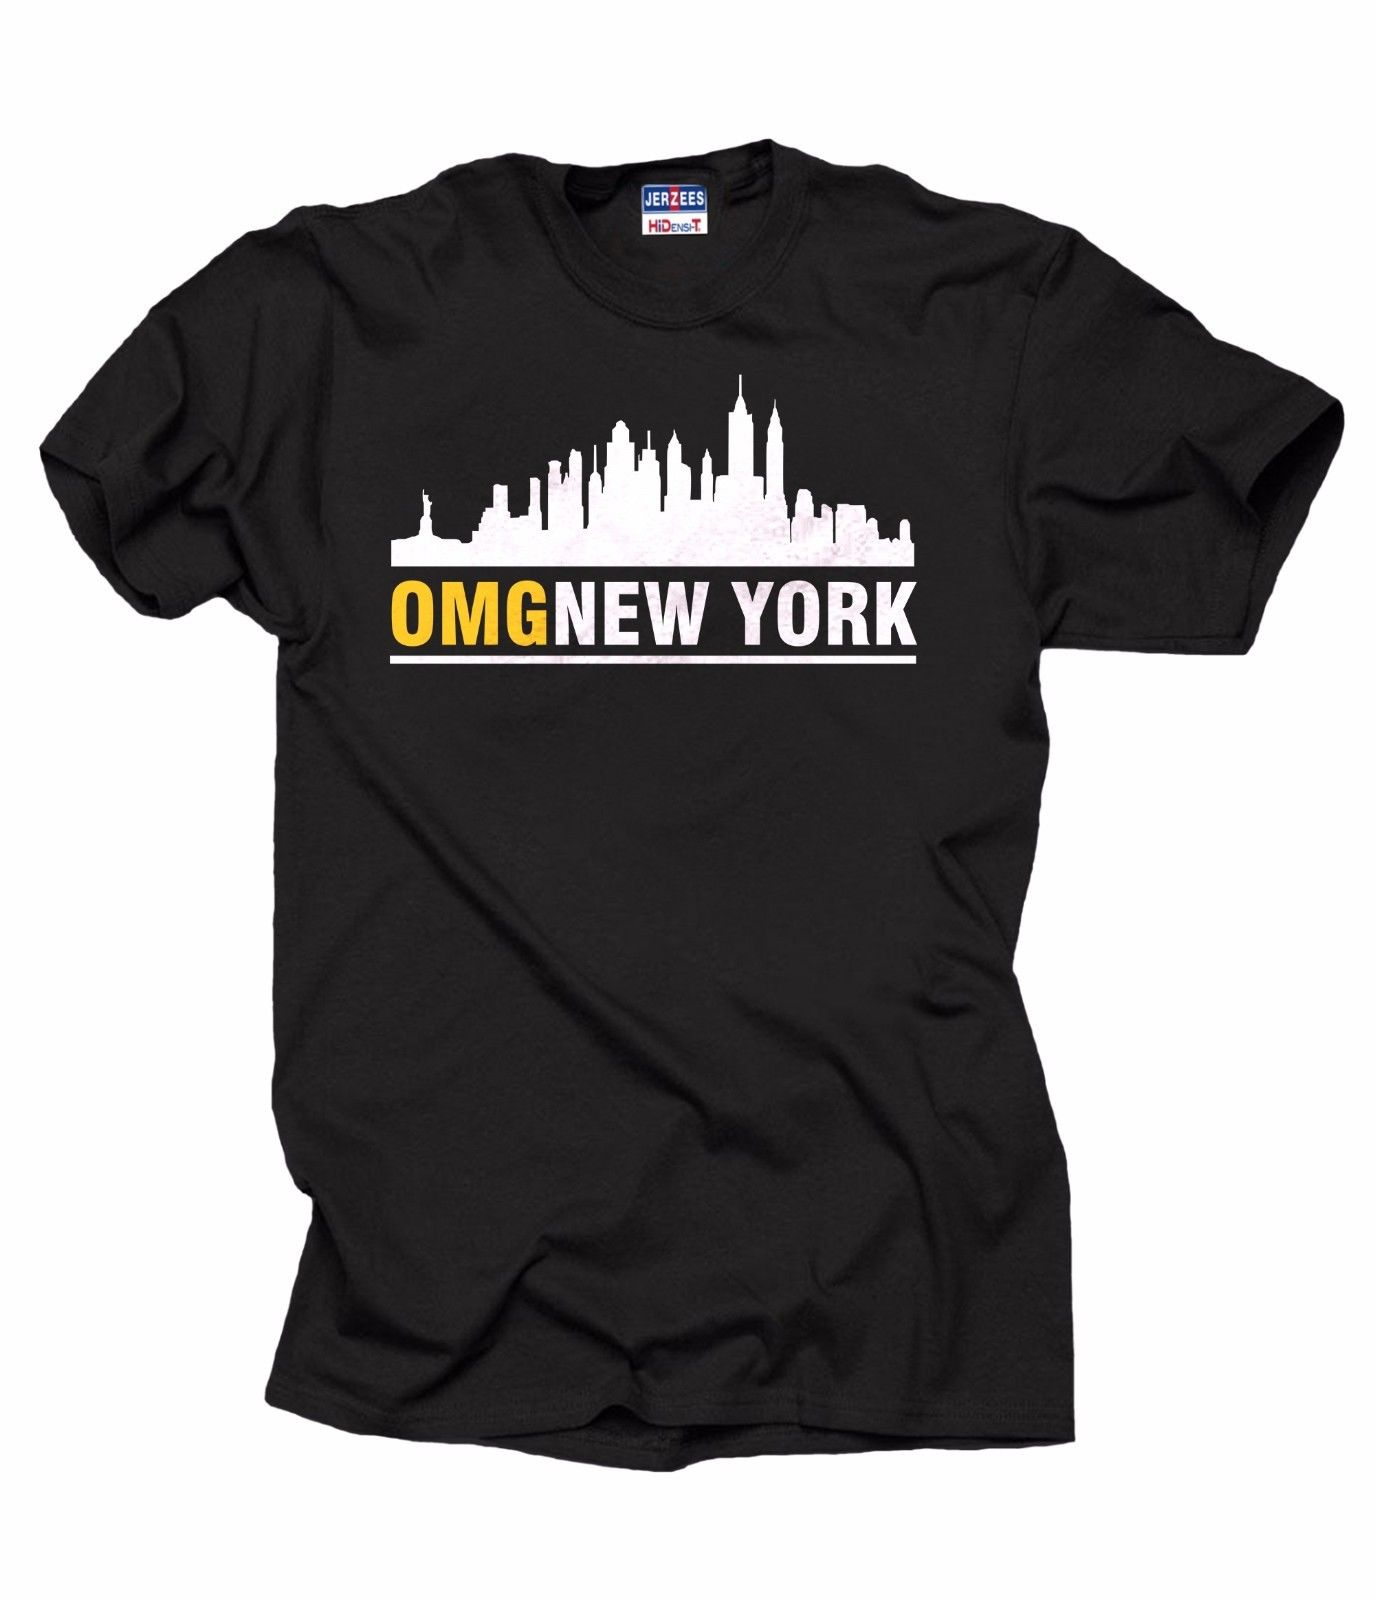 New York T-<font><b>Shirt</b></font> <font><b>I</b></font> <font><b>Love</b></font> New York Tee <font><b>Shirt</b></font> <font><b>NY</b></font> <font><b>Shirt</b></font> image